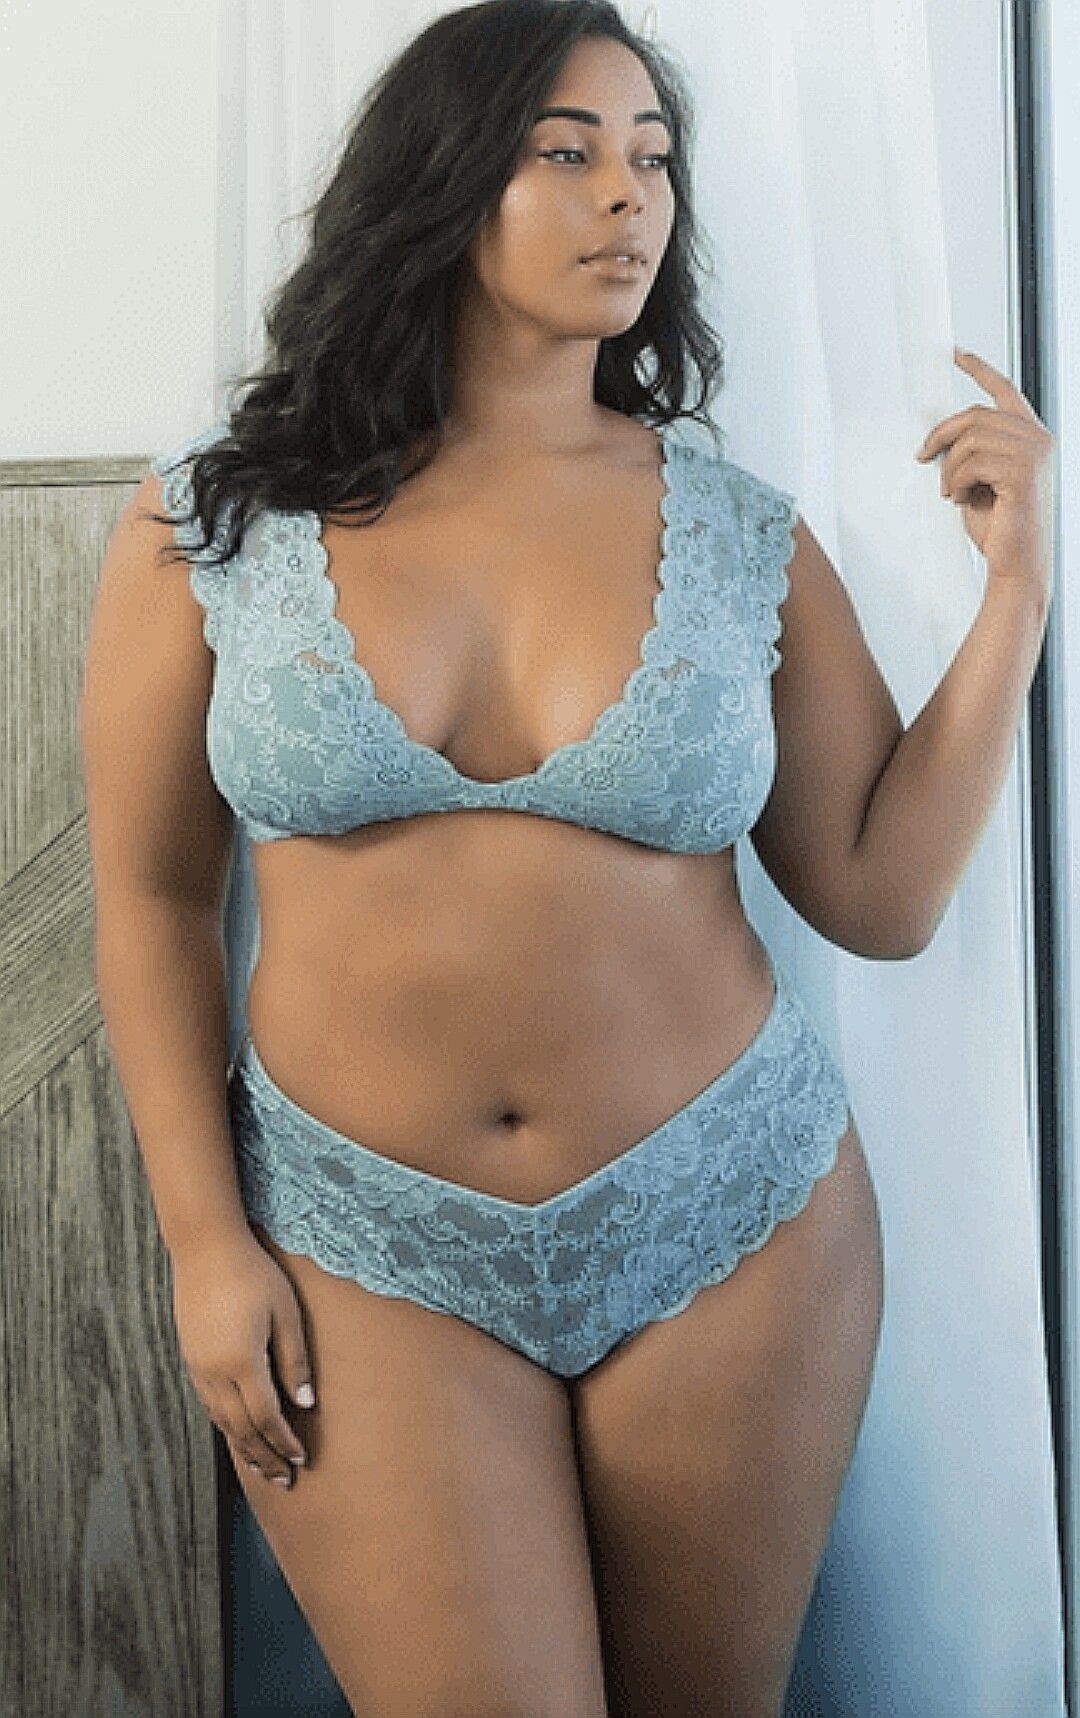 420088a99a8 This plus size Floral Lace Tanga is what lace dreams are made of. Made in a  delicate floral lace pattern with scalloped trim.